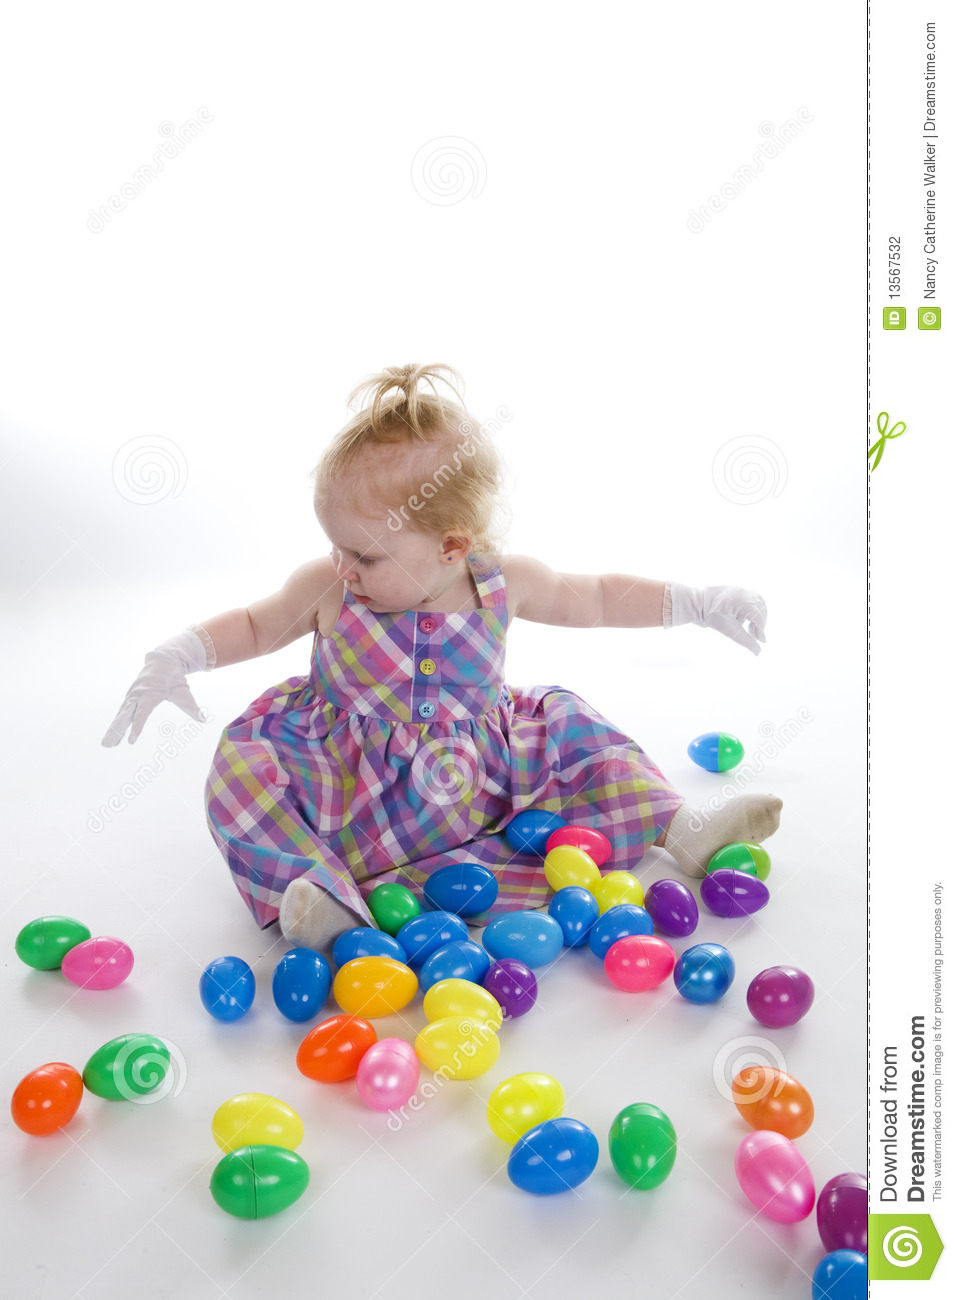 This Many Eggs